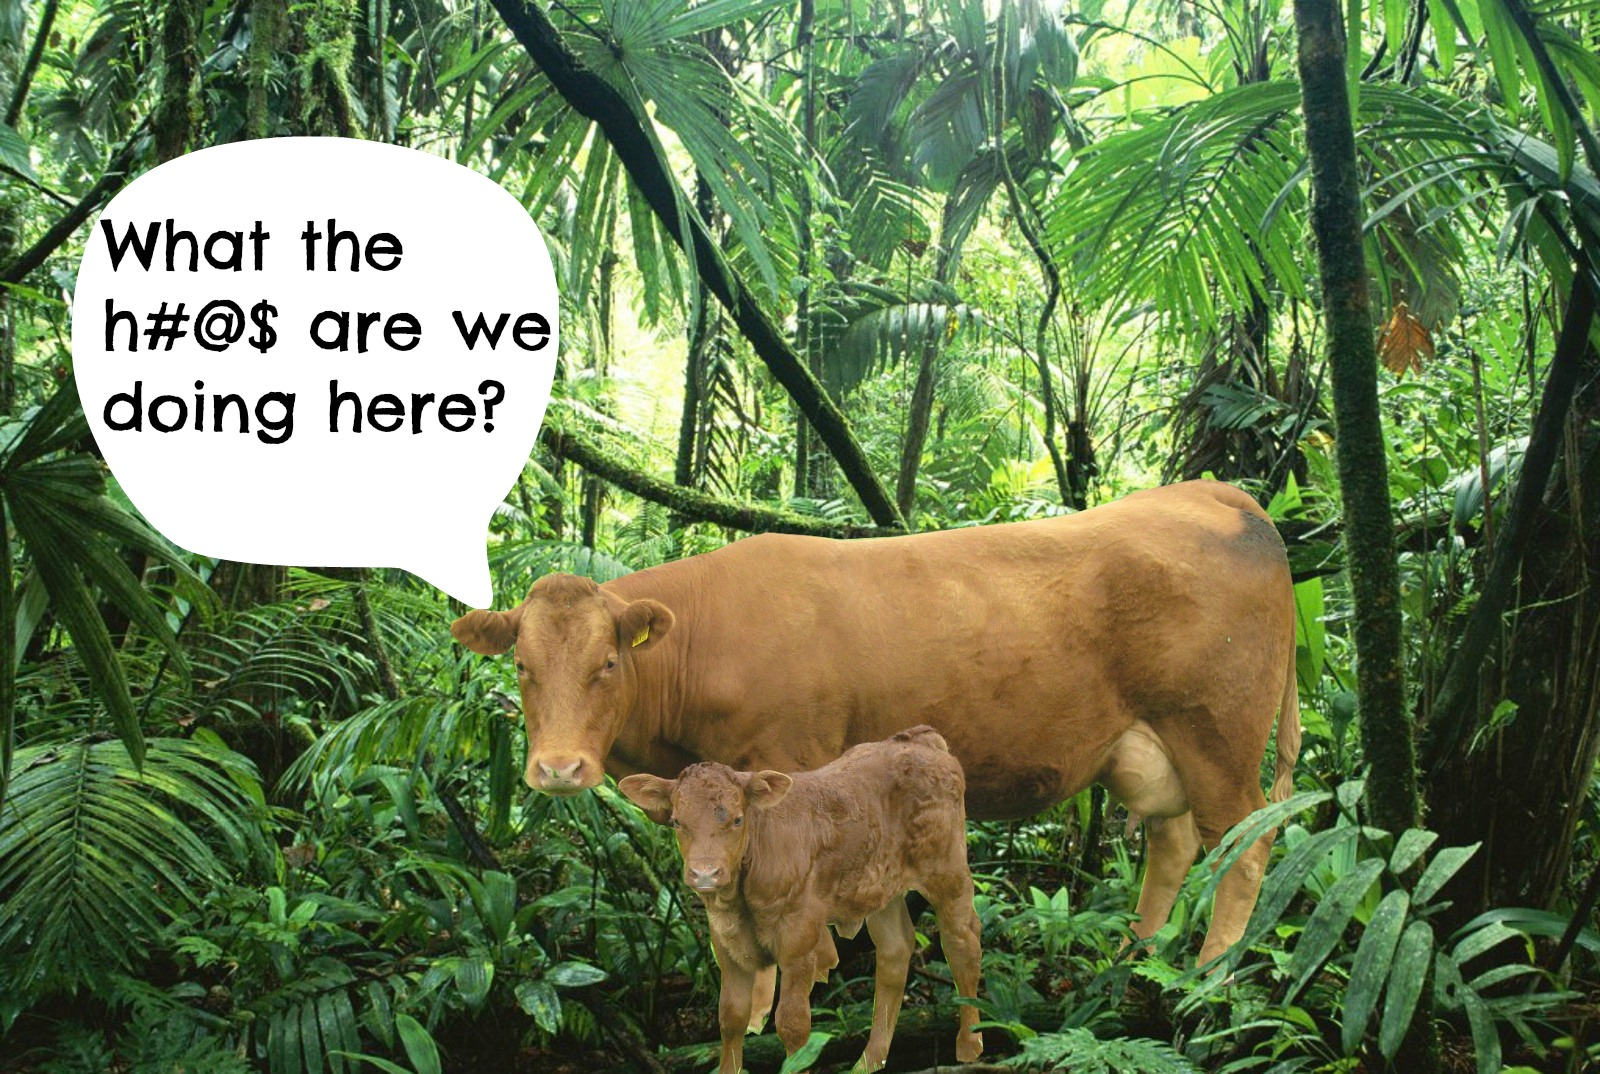 5 Reasons Why Cows Don't Belong in the Rainforest